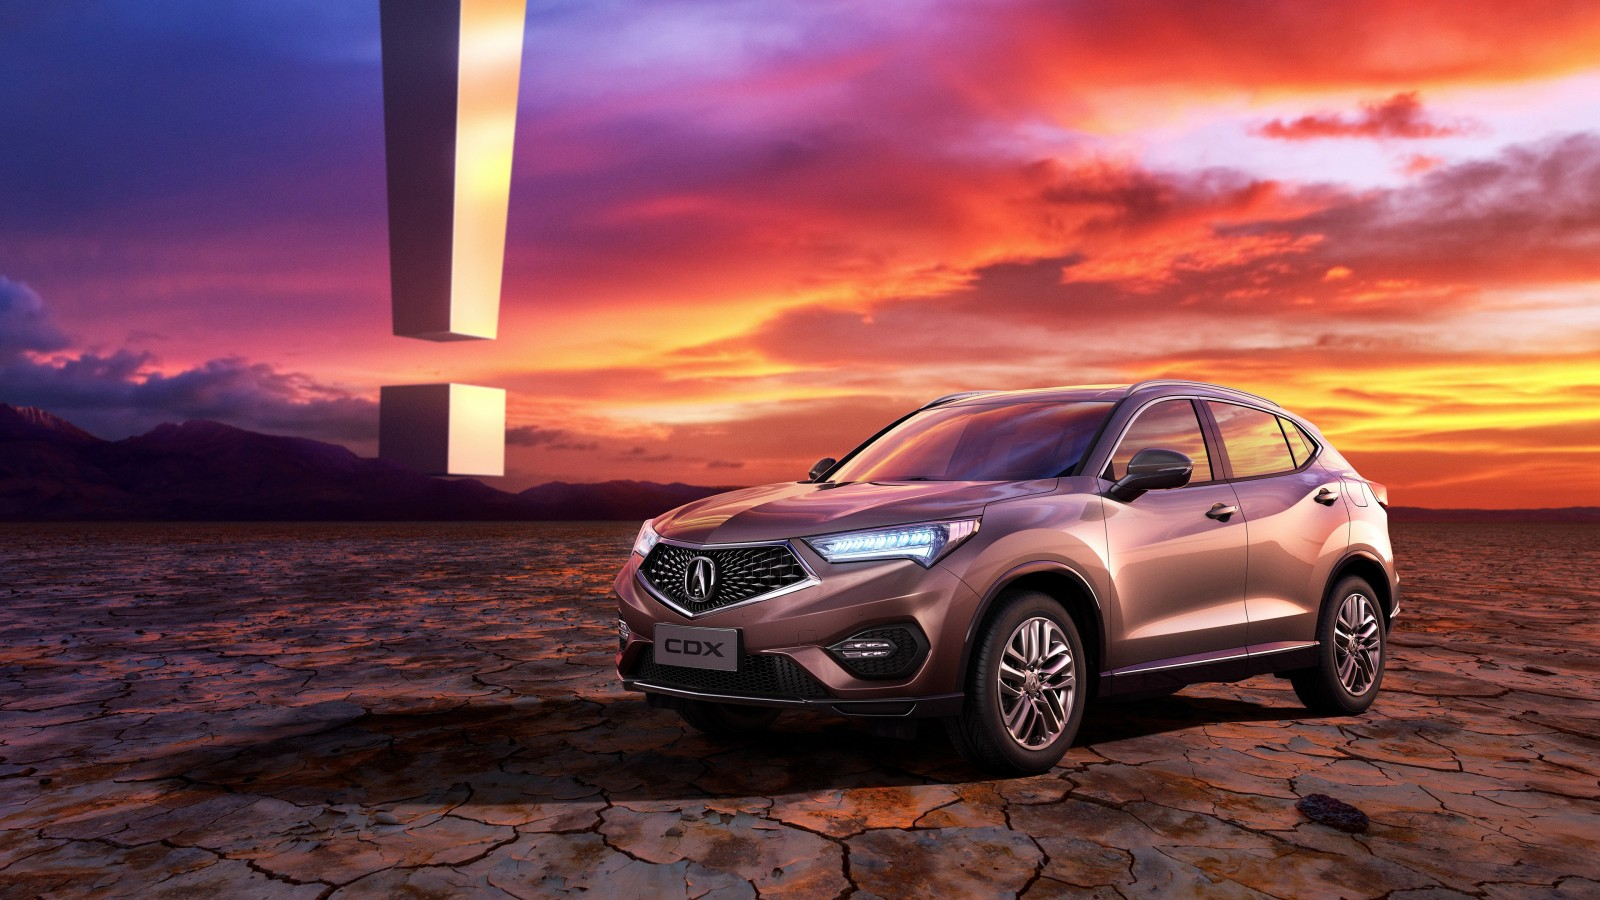 Hd Love Wallpapers For Android Mobile 2016 2017: Acura CDX 2017 Wallpaper